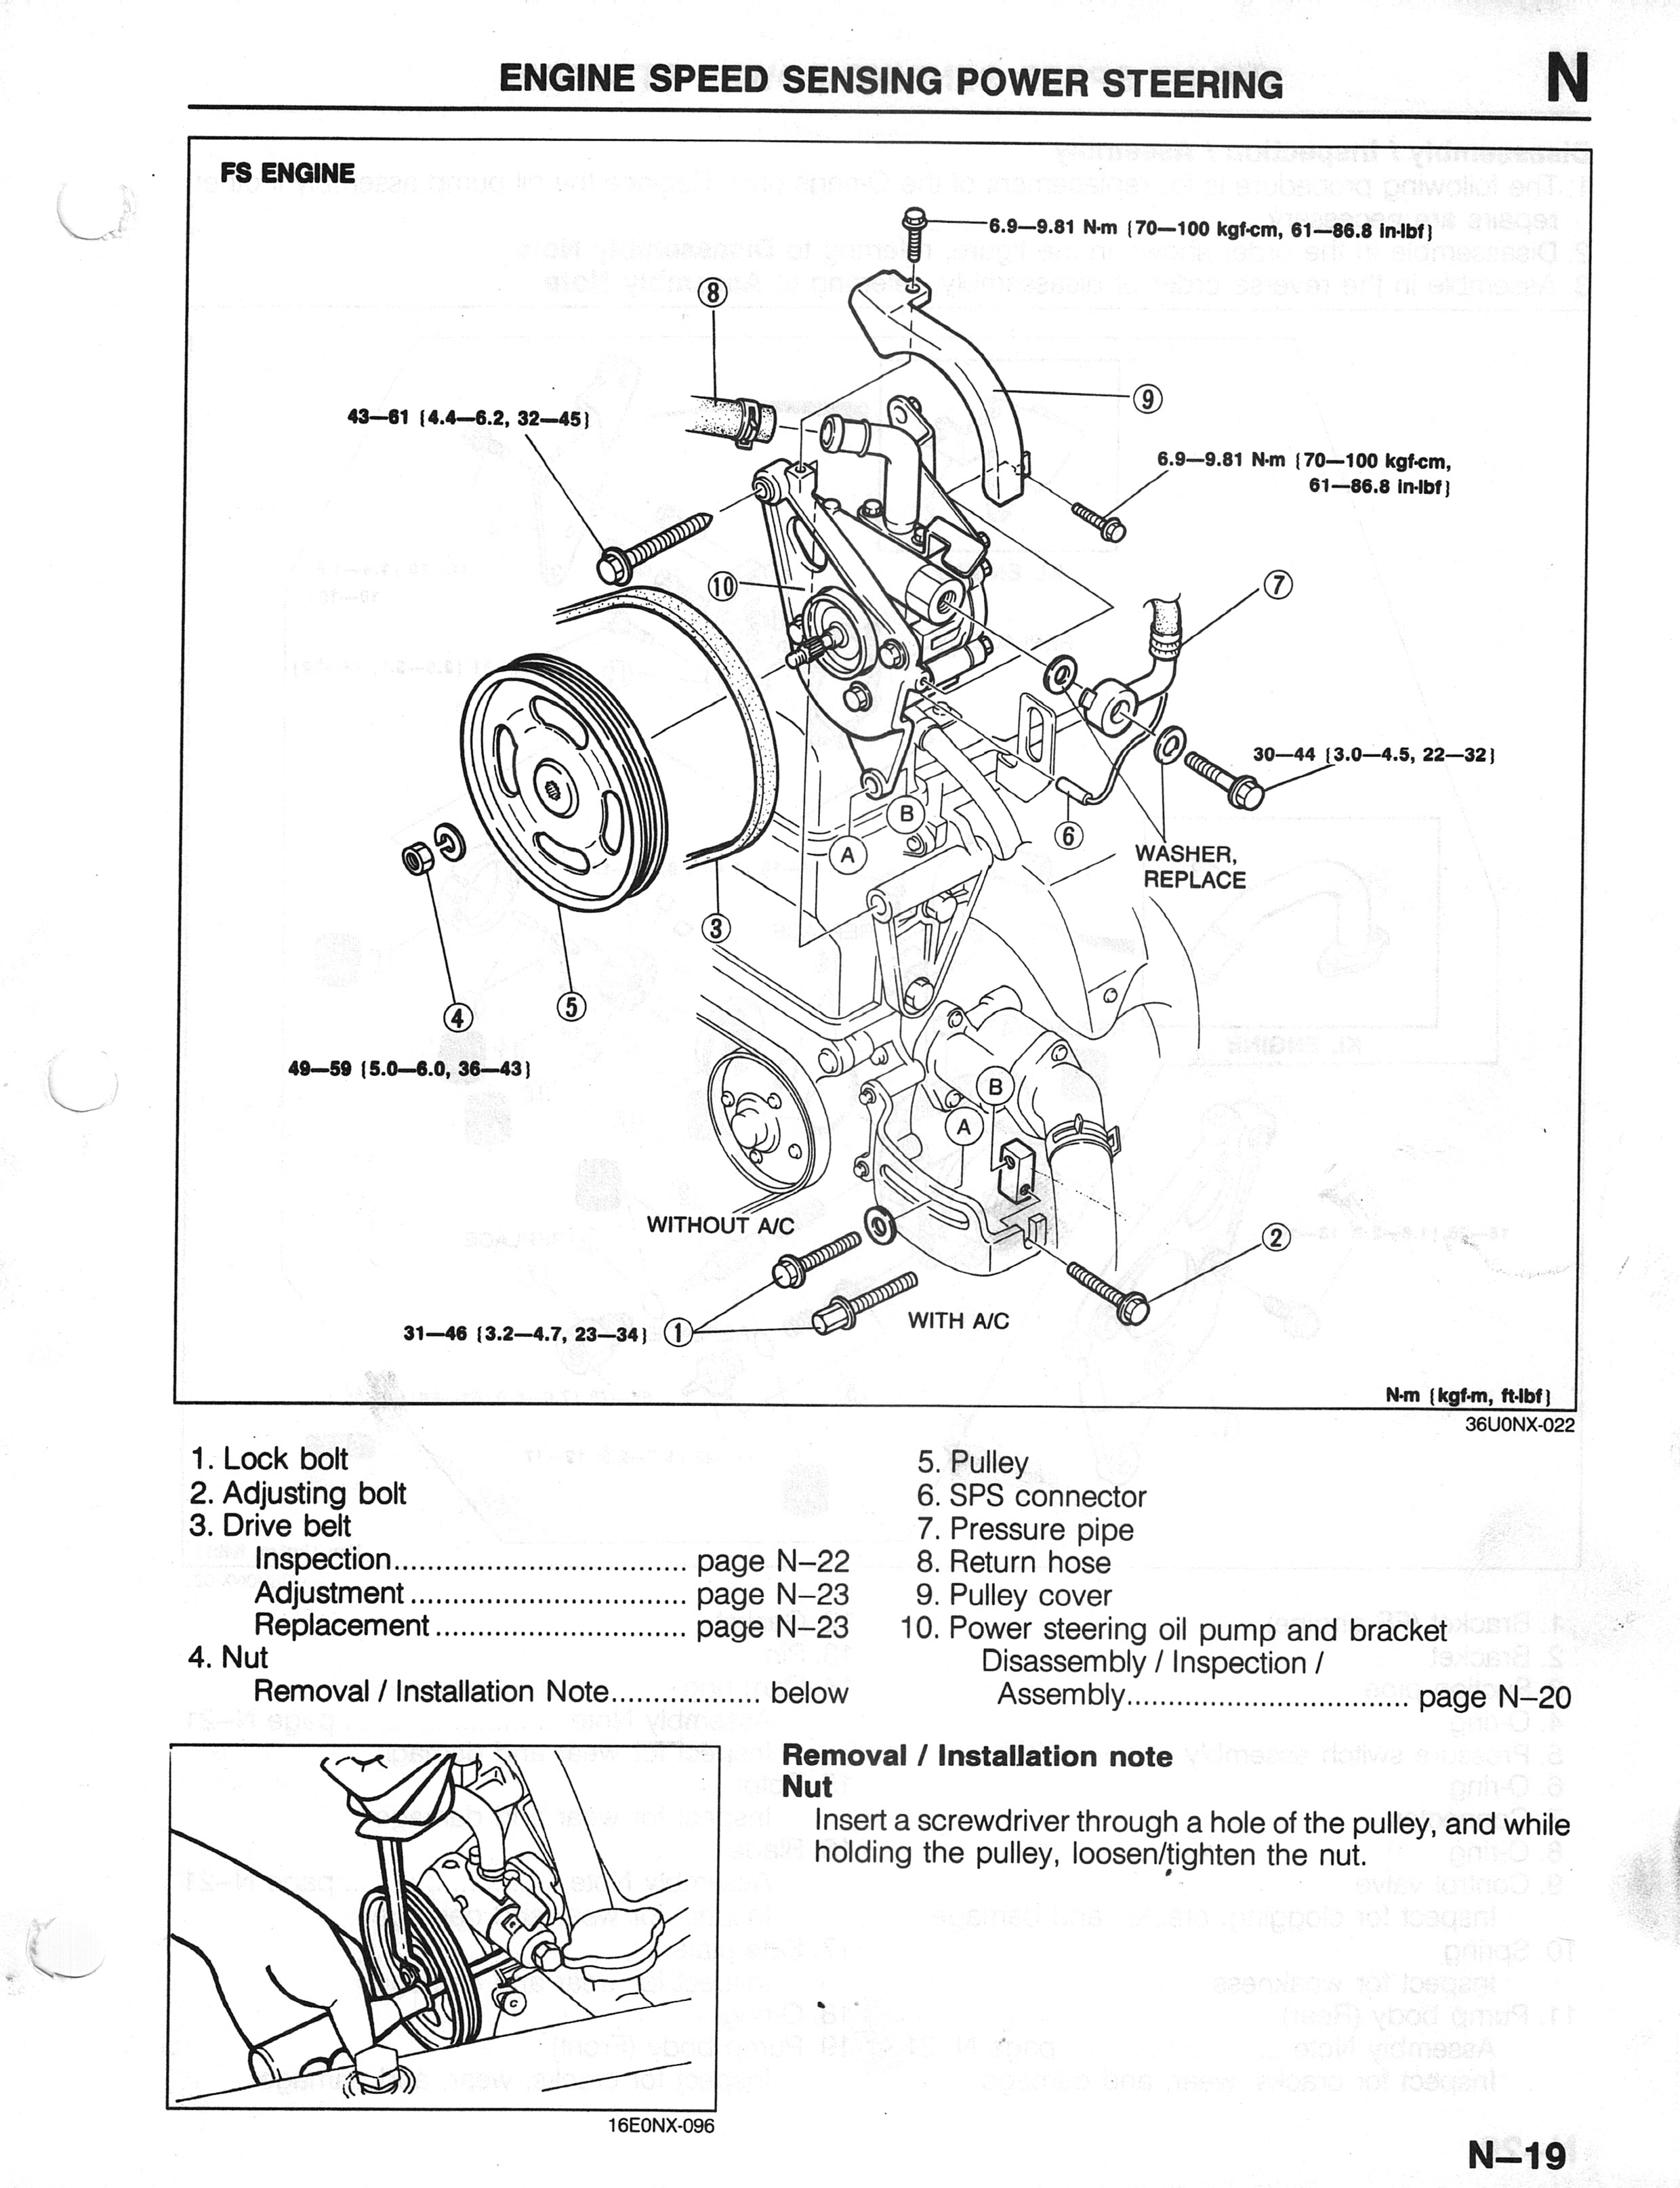 power steering pump repair info 1993 2002 2 5l v6. Black Bedroom Furniture Sets. Home Design Ideas